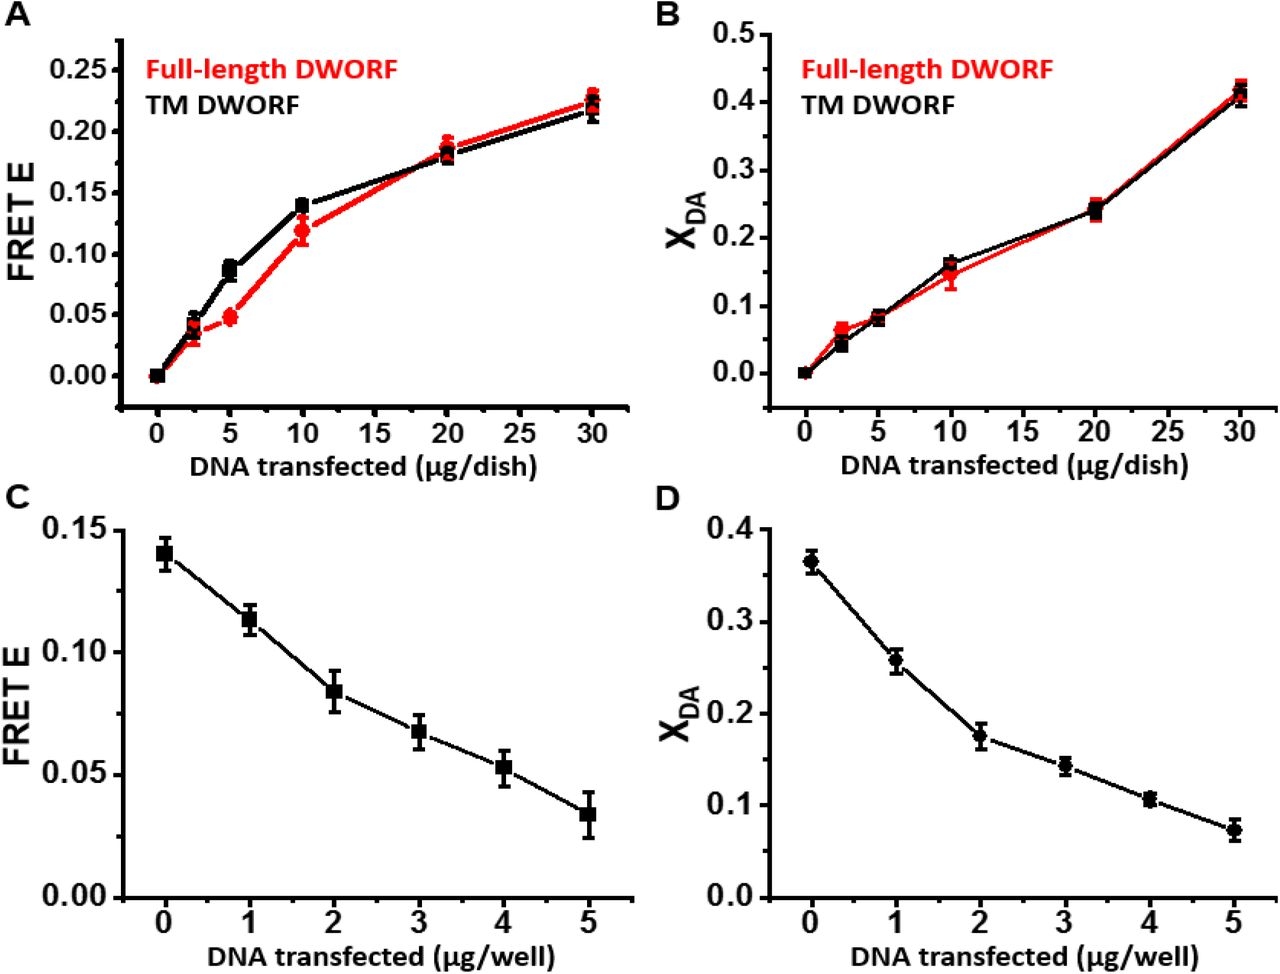 FRET-detected interaction of SERCA with the isolated TM domain of DWORF is similar to that with full-length DWORF. (A) FRET efficiency (E) in HEK293 cells stably expressing GFP-SERCA2a, vs. μg/dish of DNA transiently transfected into HEK293 cells expressing RFP-TM-DWORF (black) or full-length RFP-DWORF (red). (B) Fraction X DA of donors (GFP) transferring energy (bound) to acceptor (RFP) determined for samples in panel A. (C) FRET efficiency E for increasing amounts of TM-DWORF DNA transfected into a stable cell line expressing GFP-SERCA2a and RFP-PLB. (D) FRET efficiency plotted vs. DNA transfected per well. D. Fraction X DA of donors transferring energy (bound) to acceptors determined for samples in C.